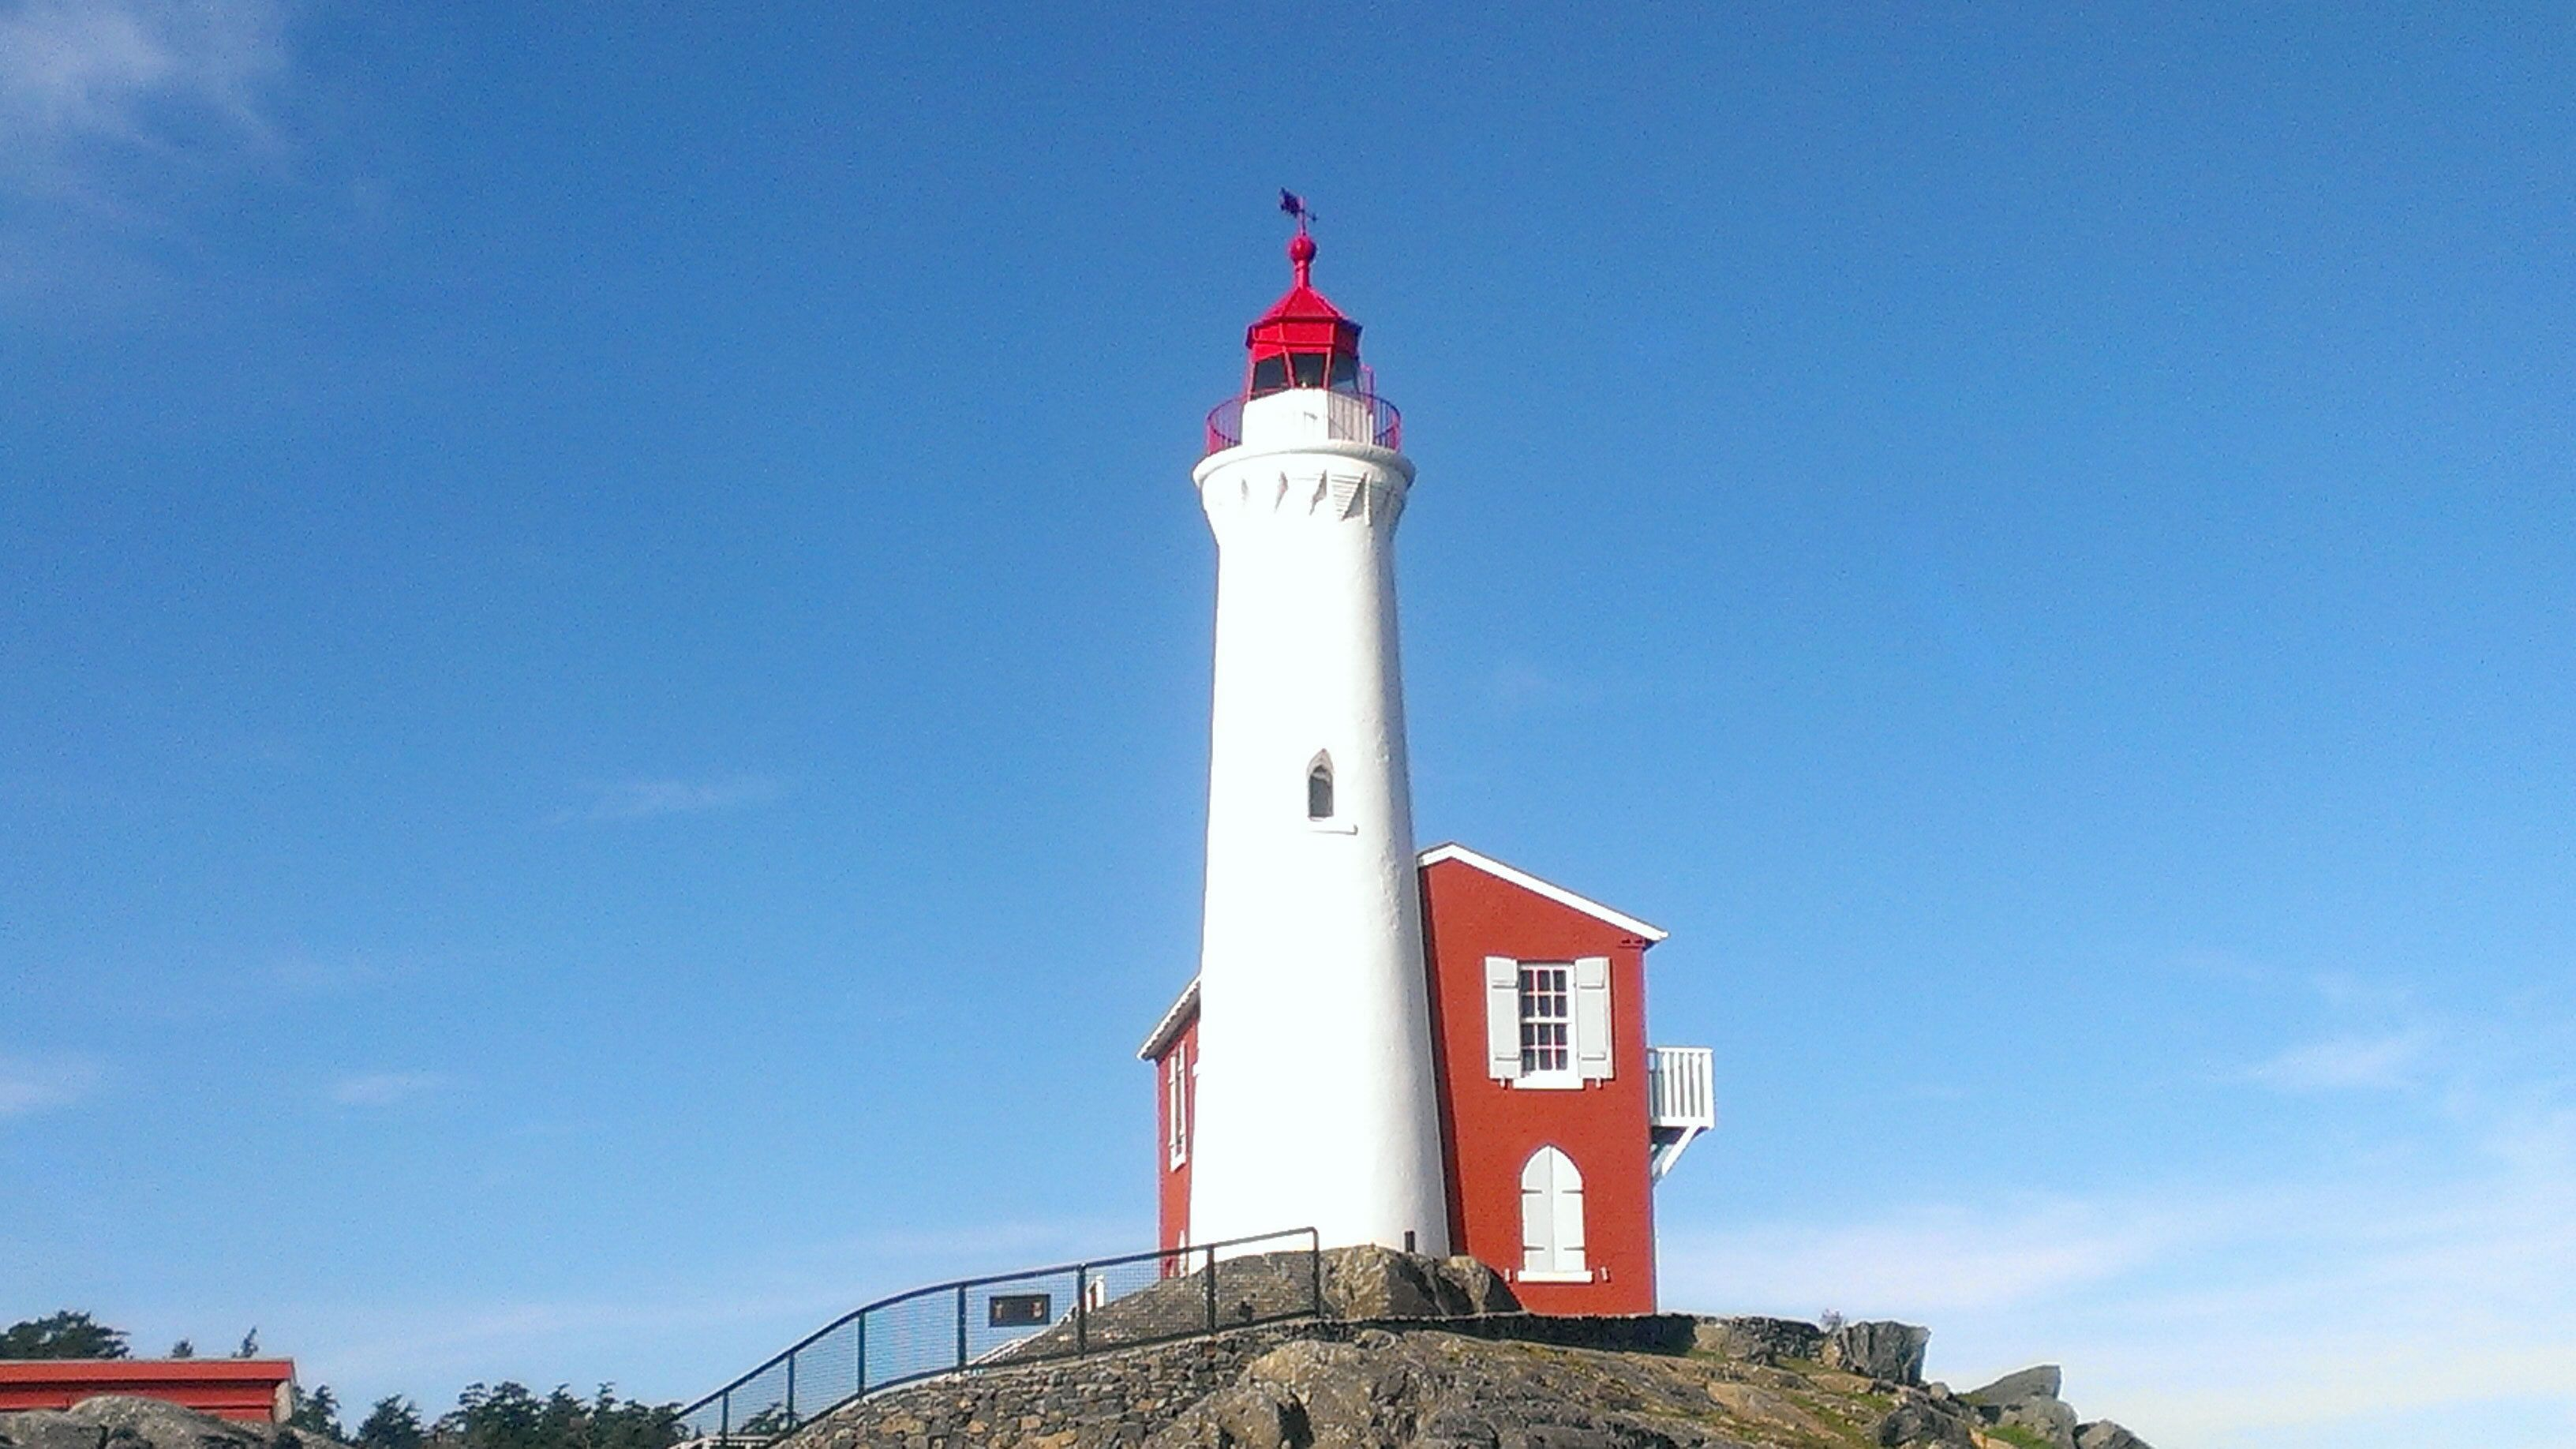 Lighthouse at Fort Rodd on Vancouver island